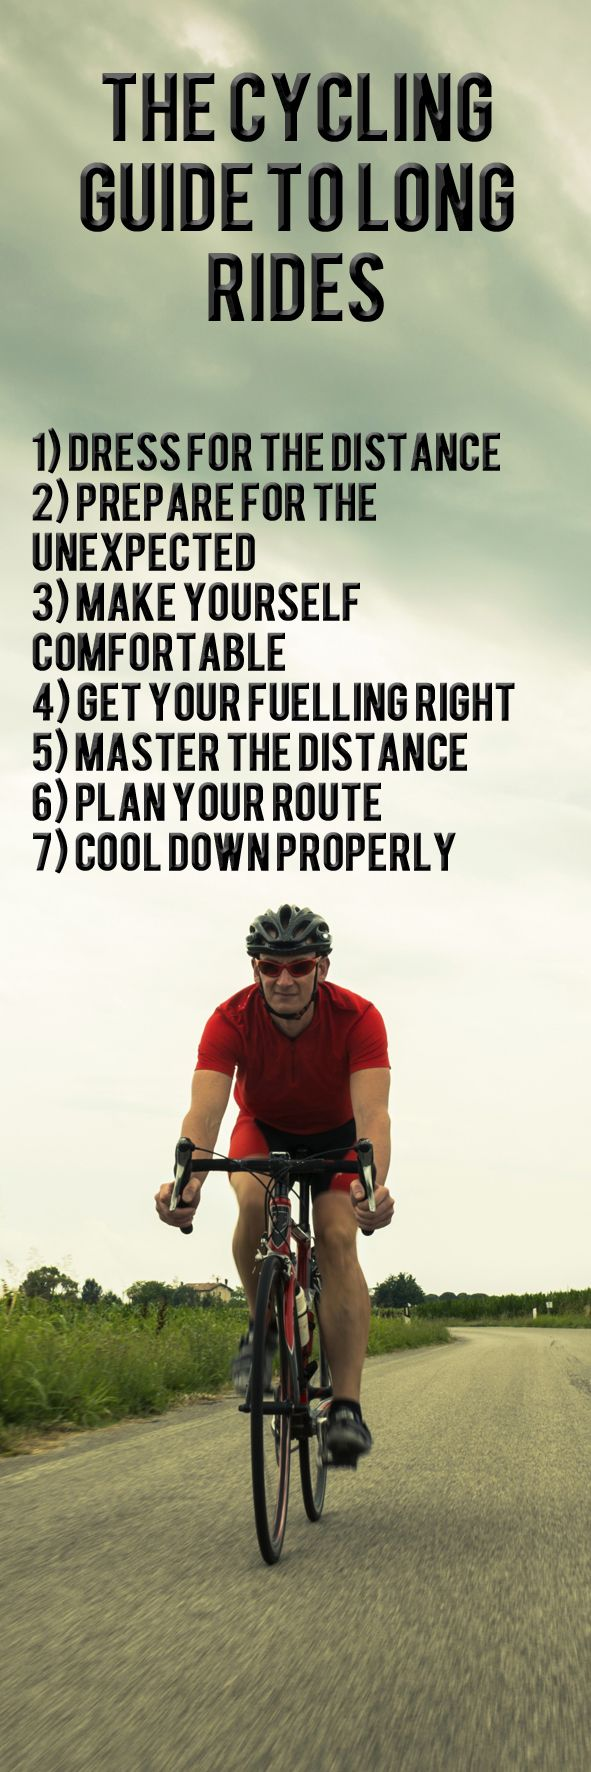 114 best Cycling Training Tips images on Pinterest ...